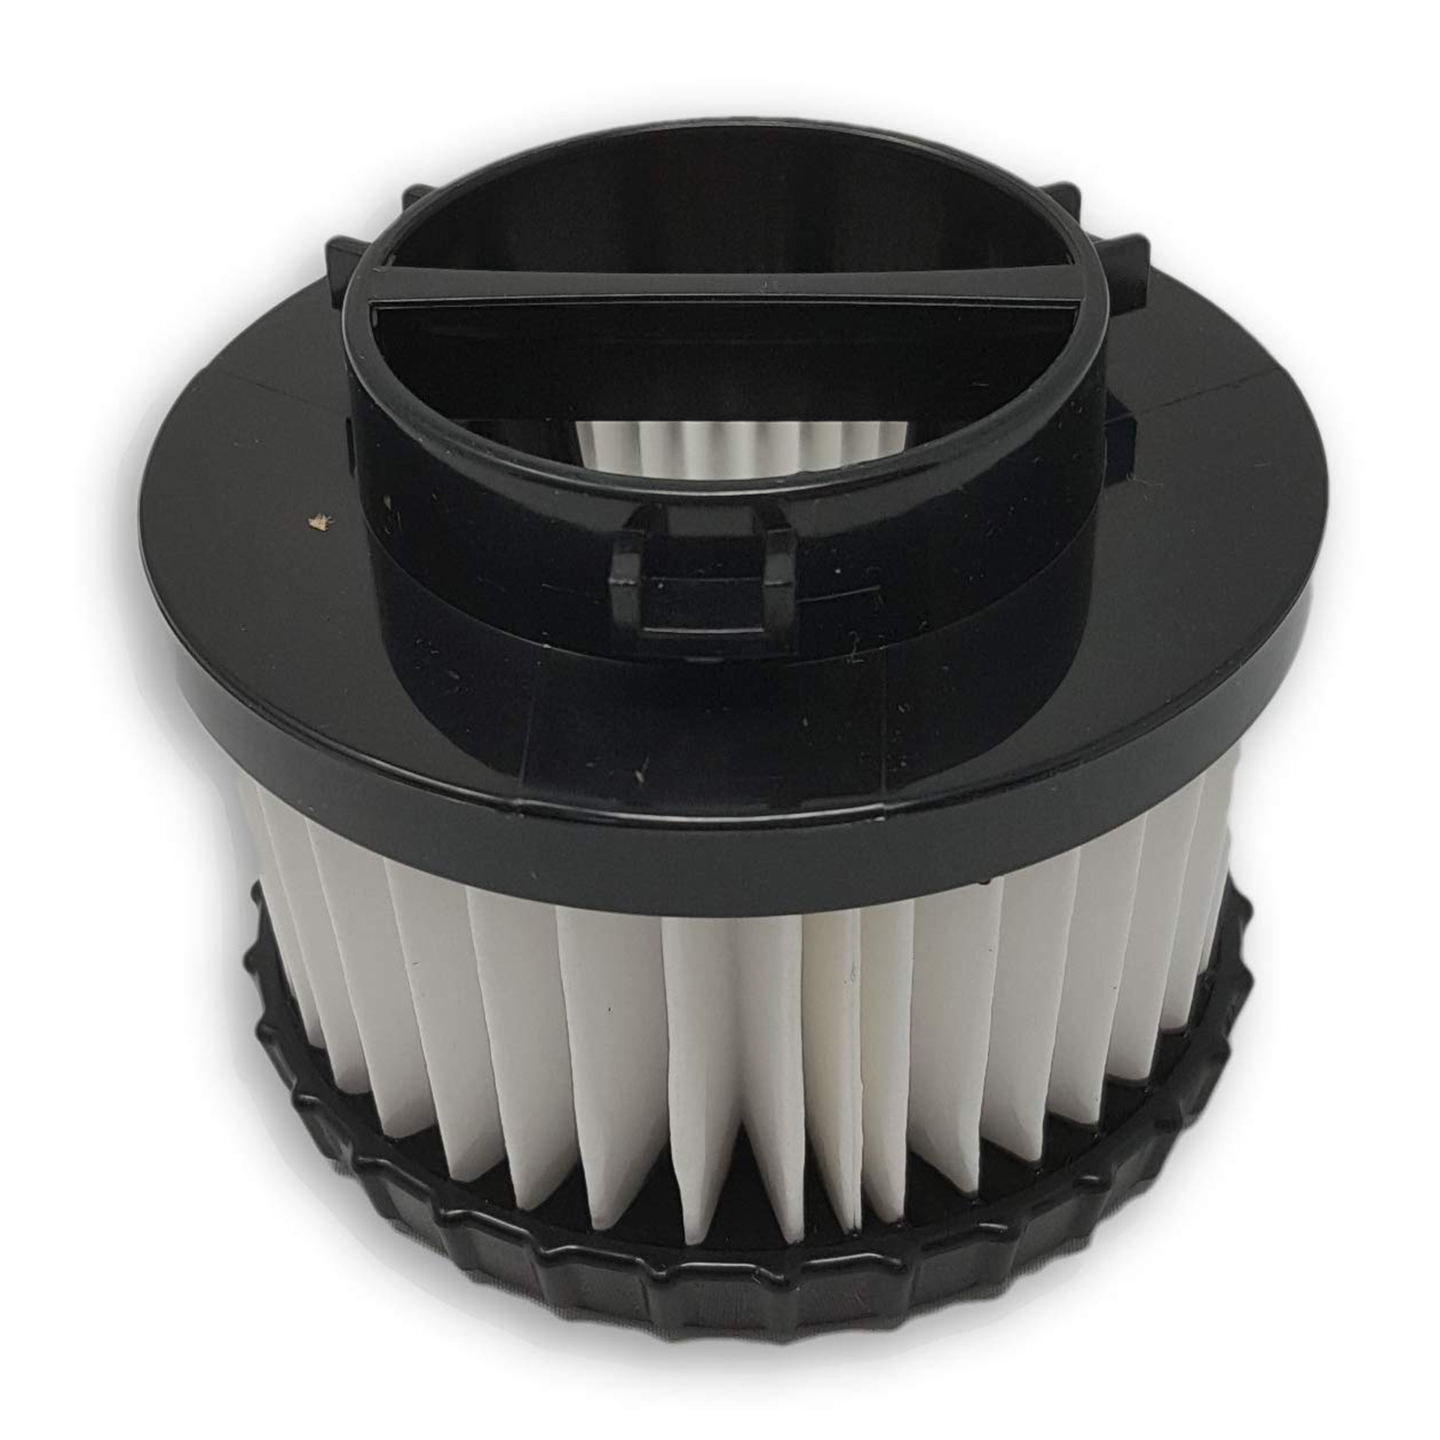 Filter Replacement for Dirt Devil F9